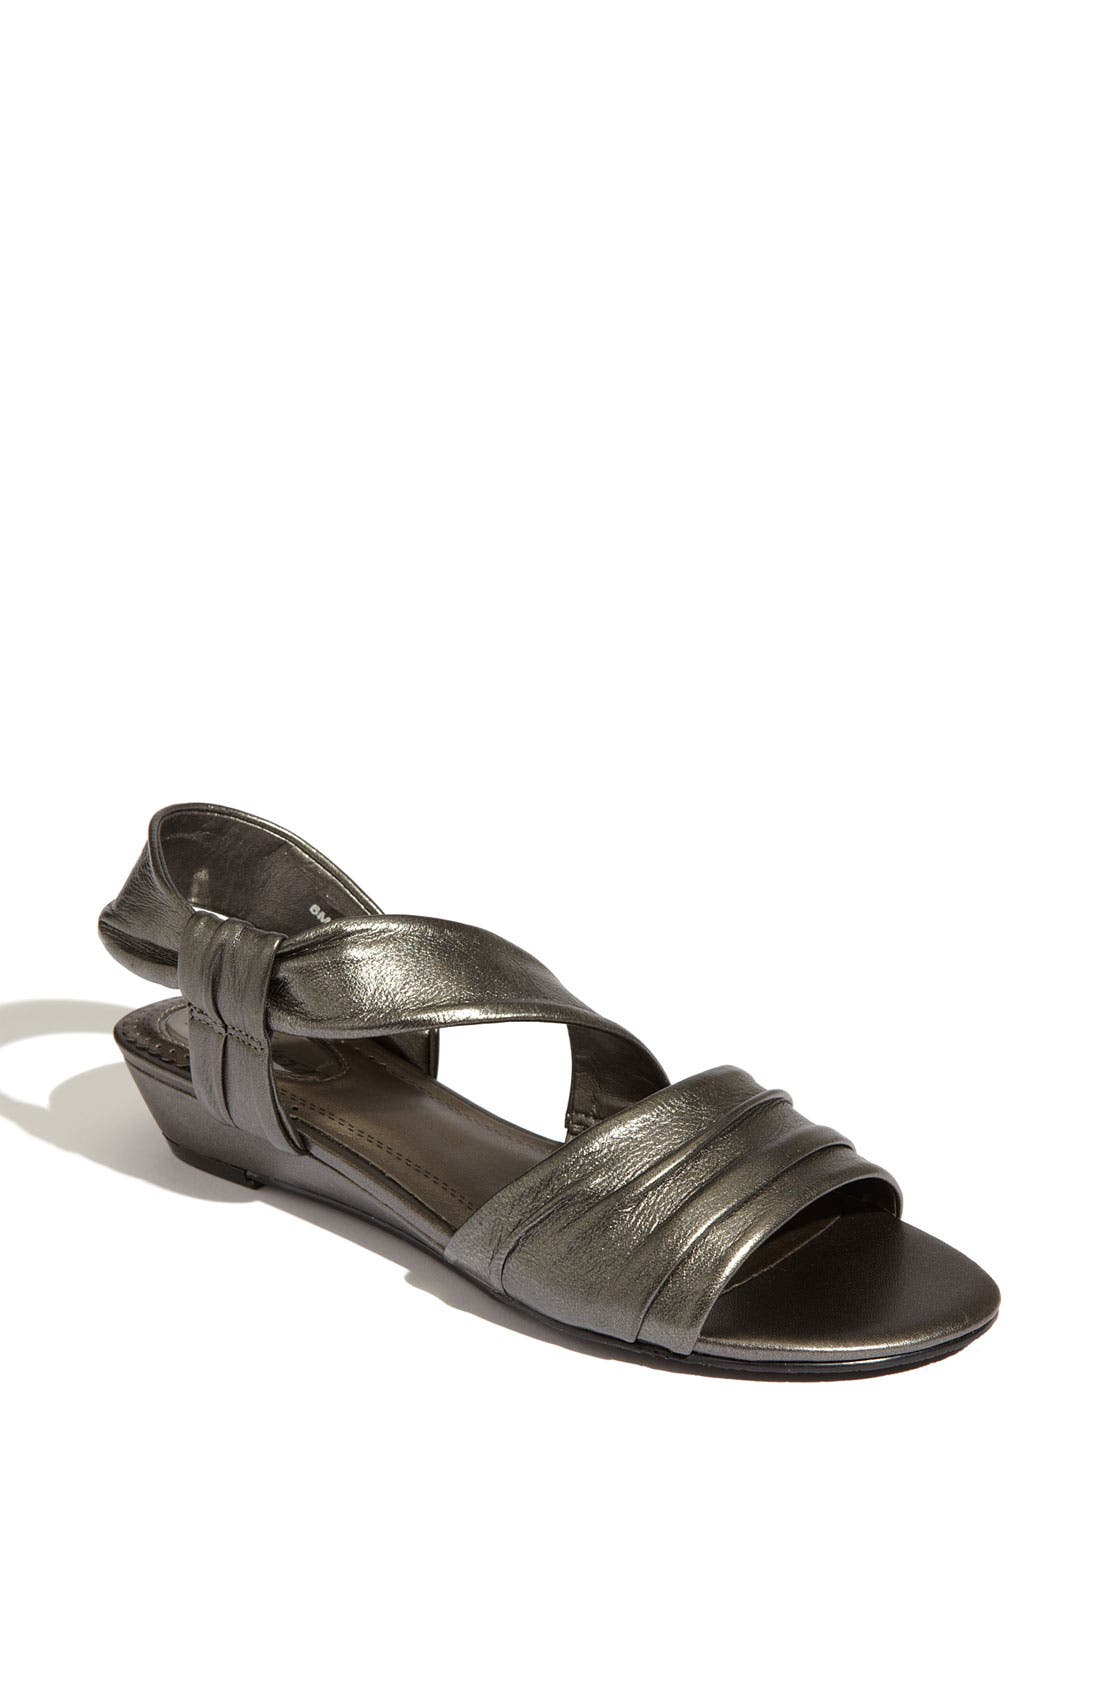 Alternate Image 1 Selected - Trotters 'Cindy' Sandal